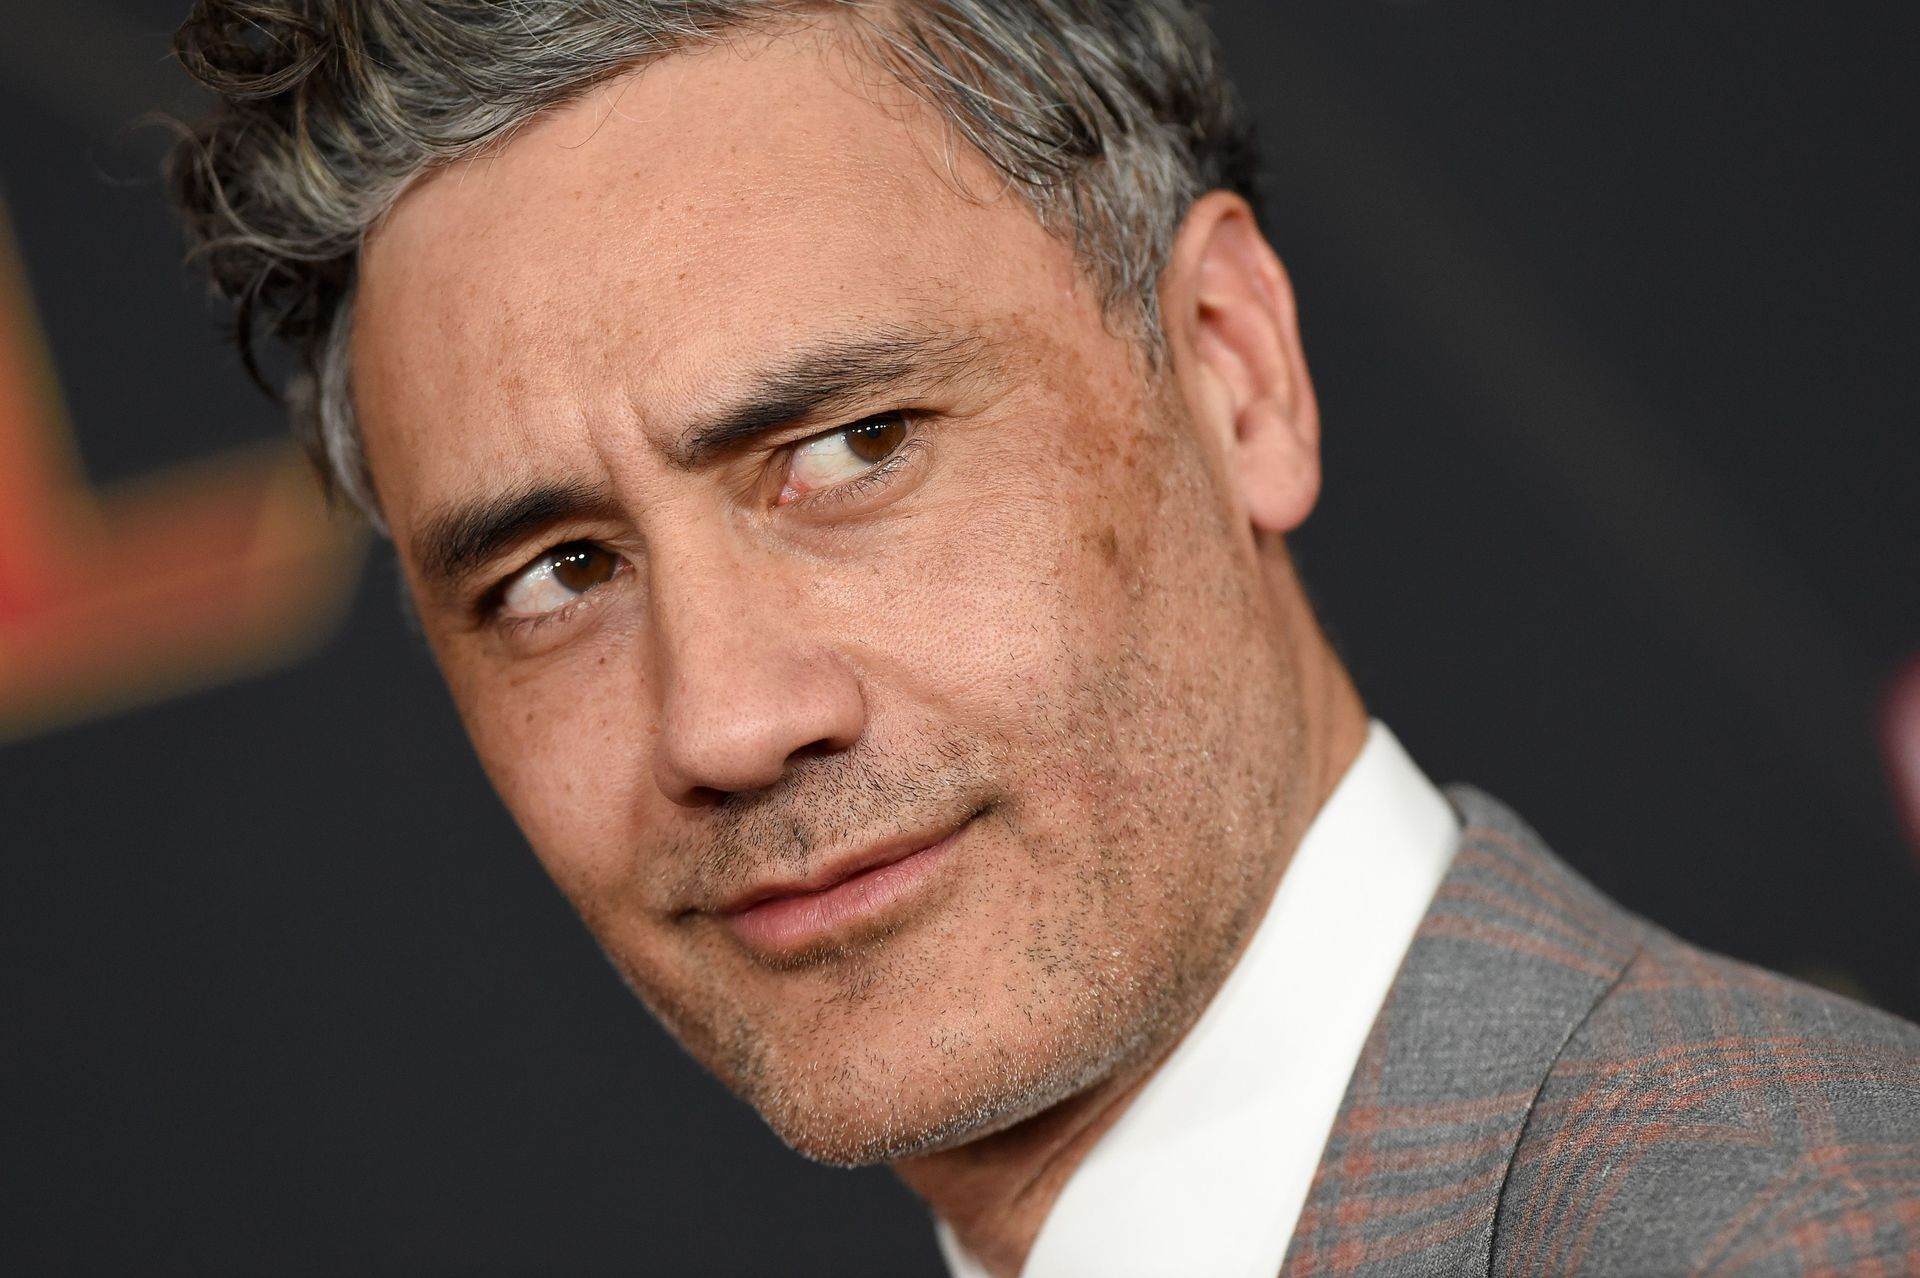 Taika Waititi on TV's What We Do in the Shadows